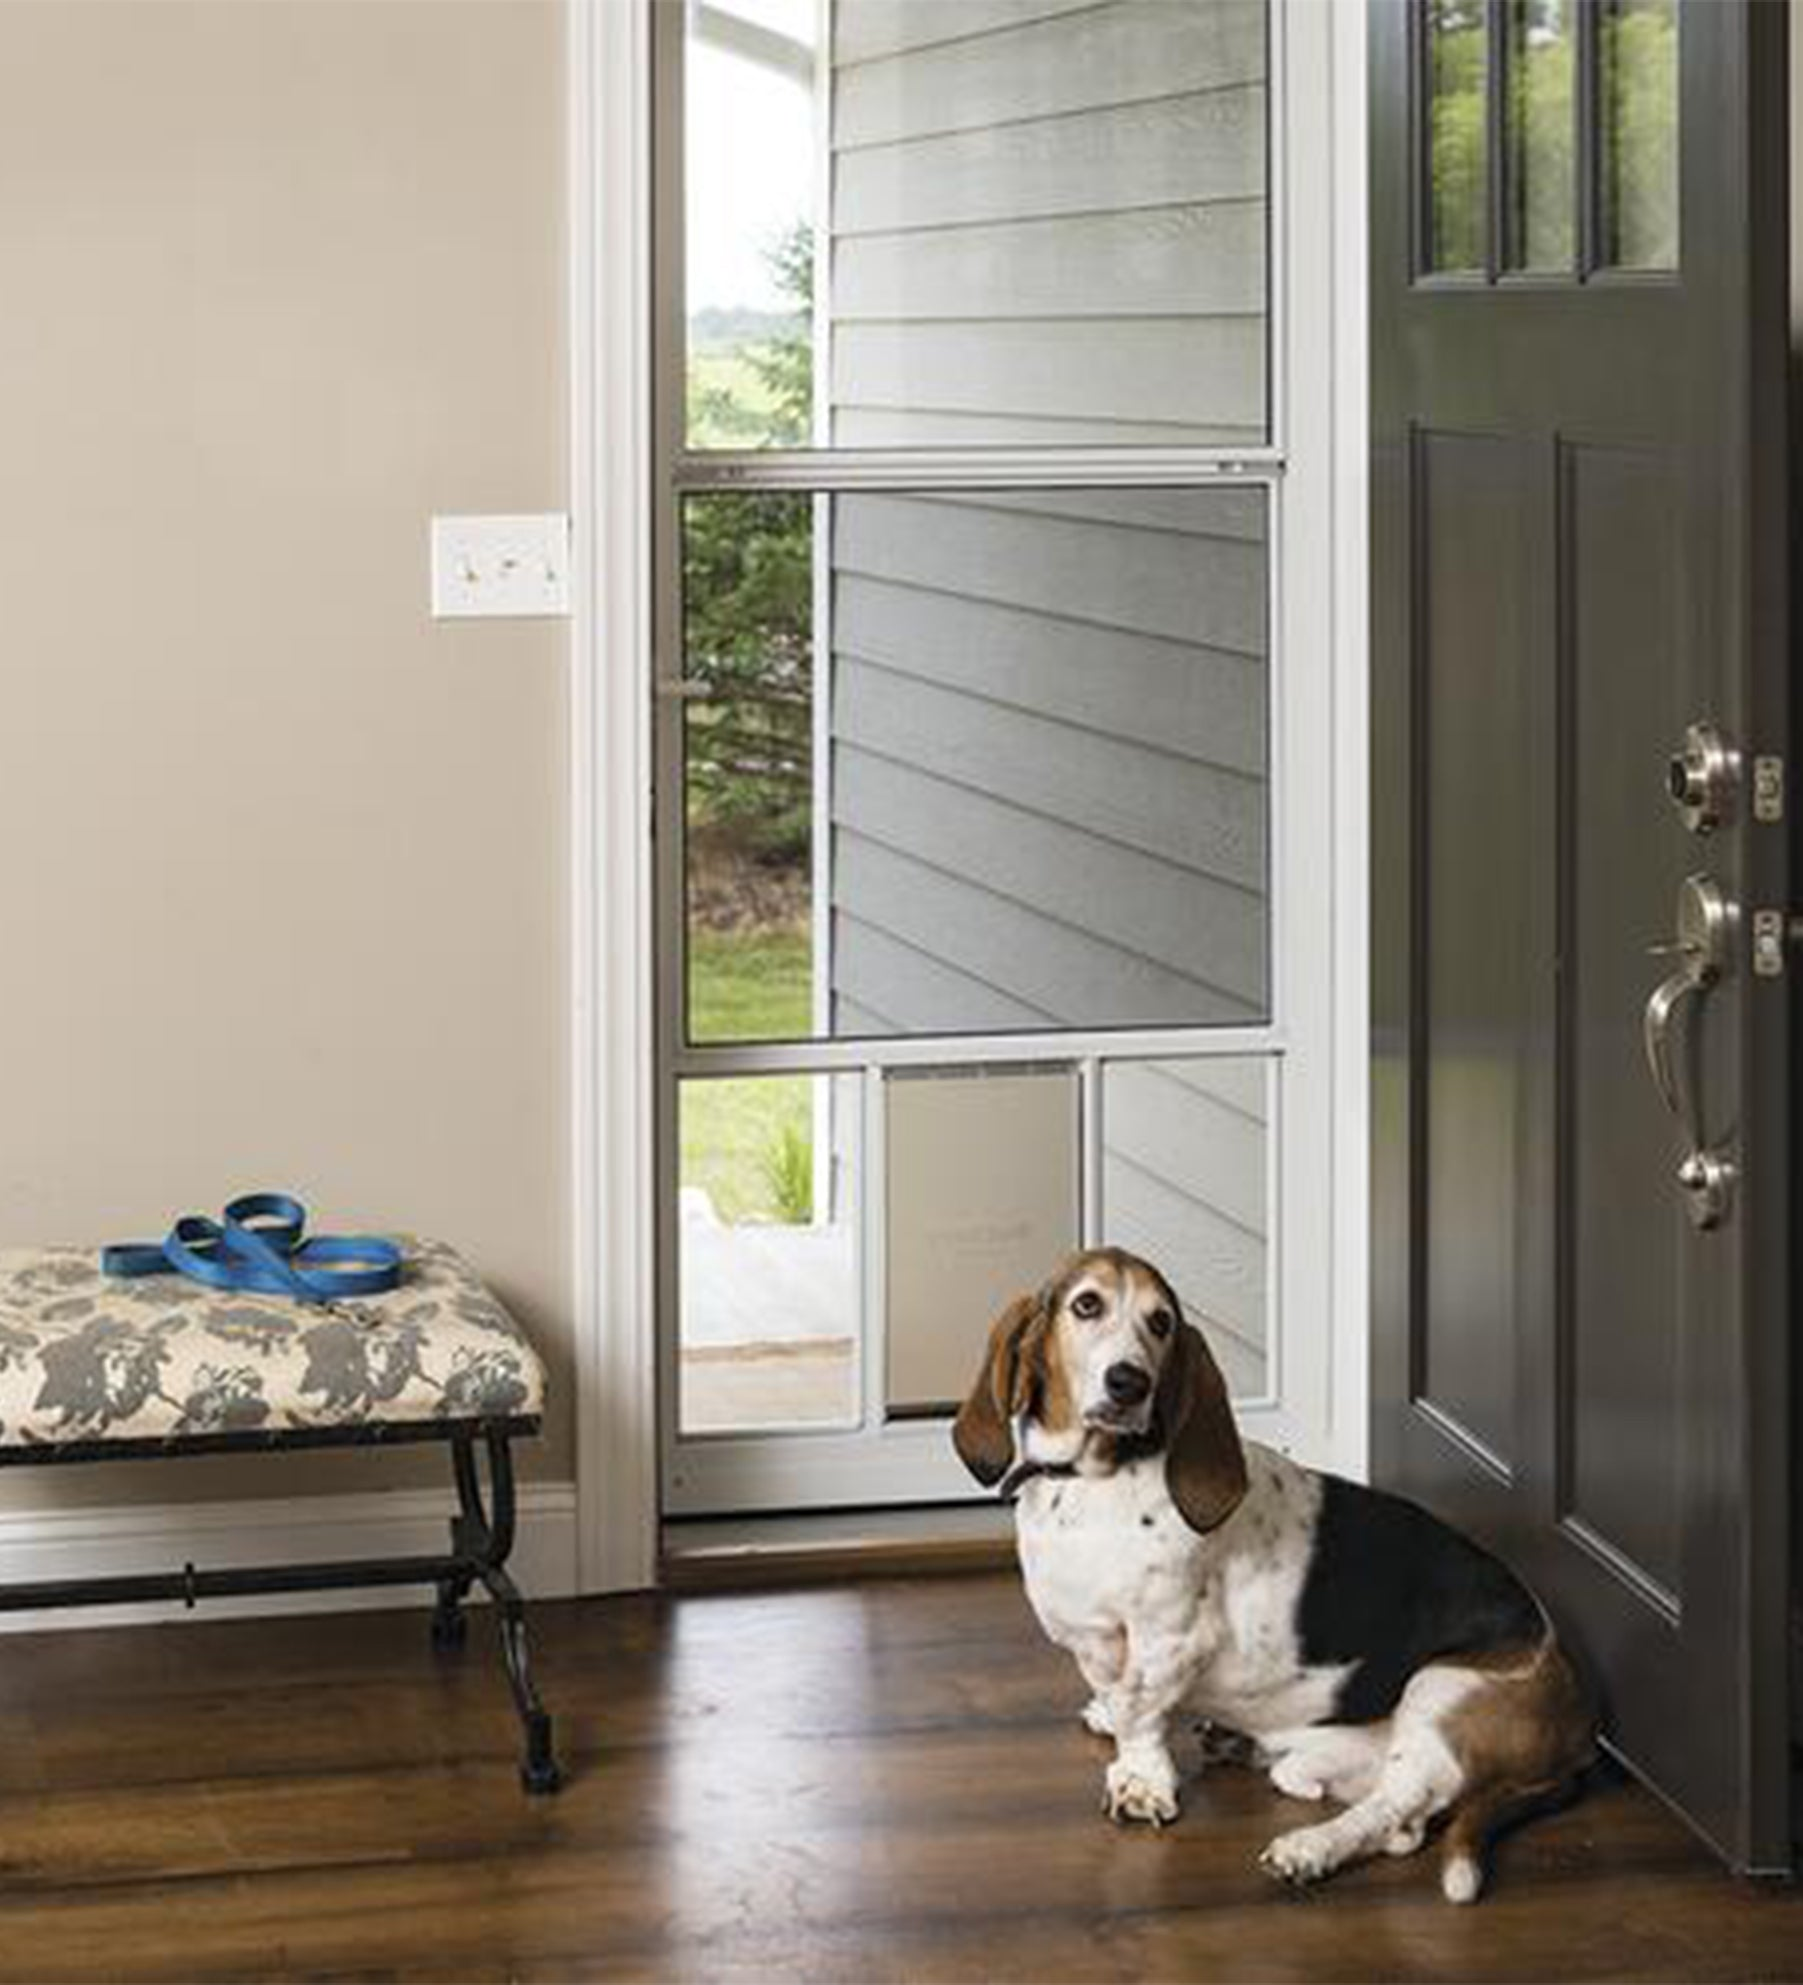 INSTALLED Larson Classic-View Pet Storm Door w/ Hardware STARTING $620.99